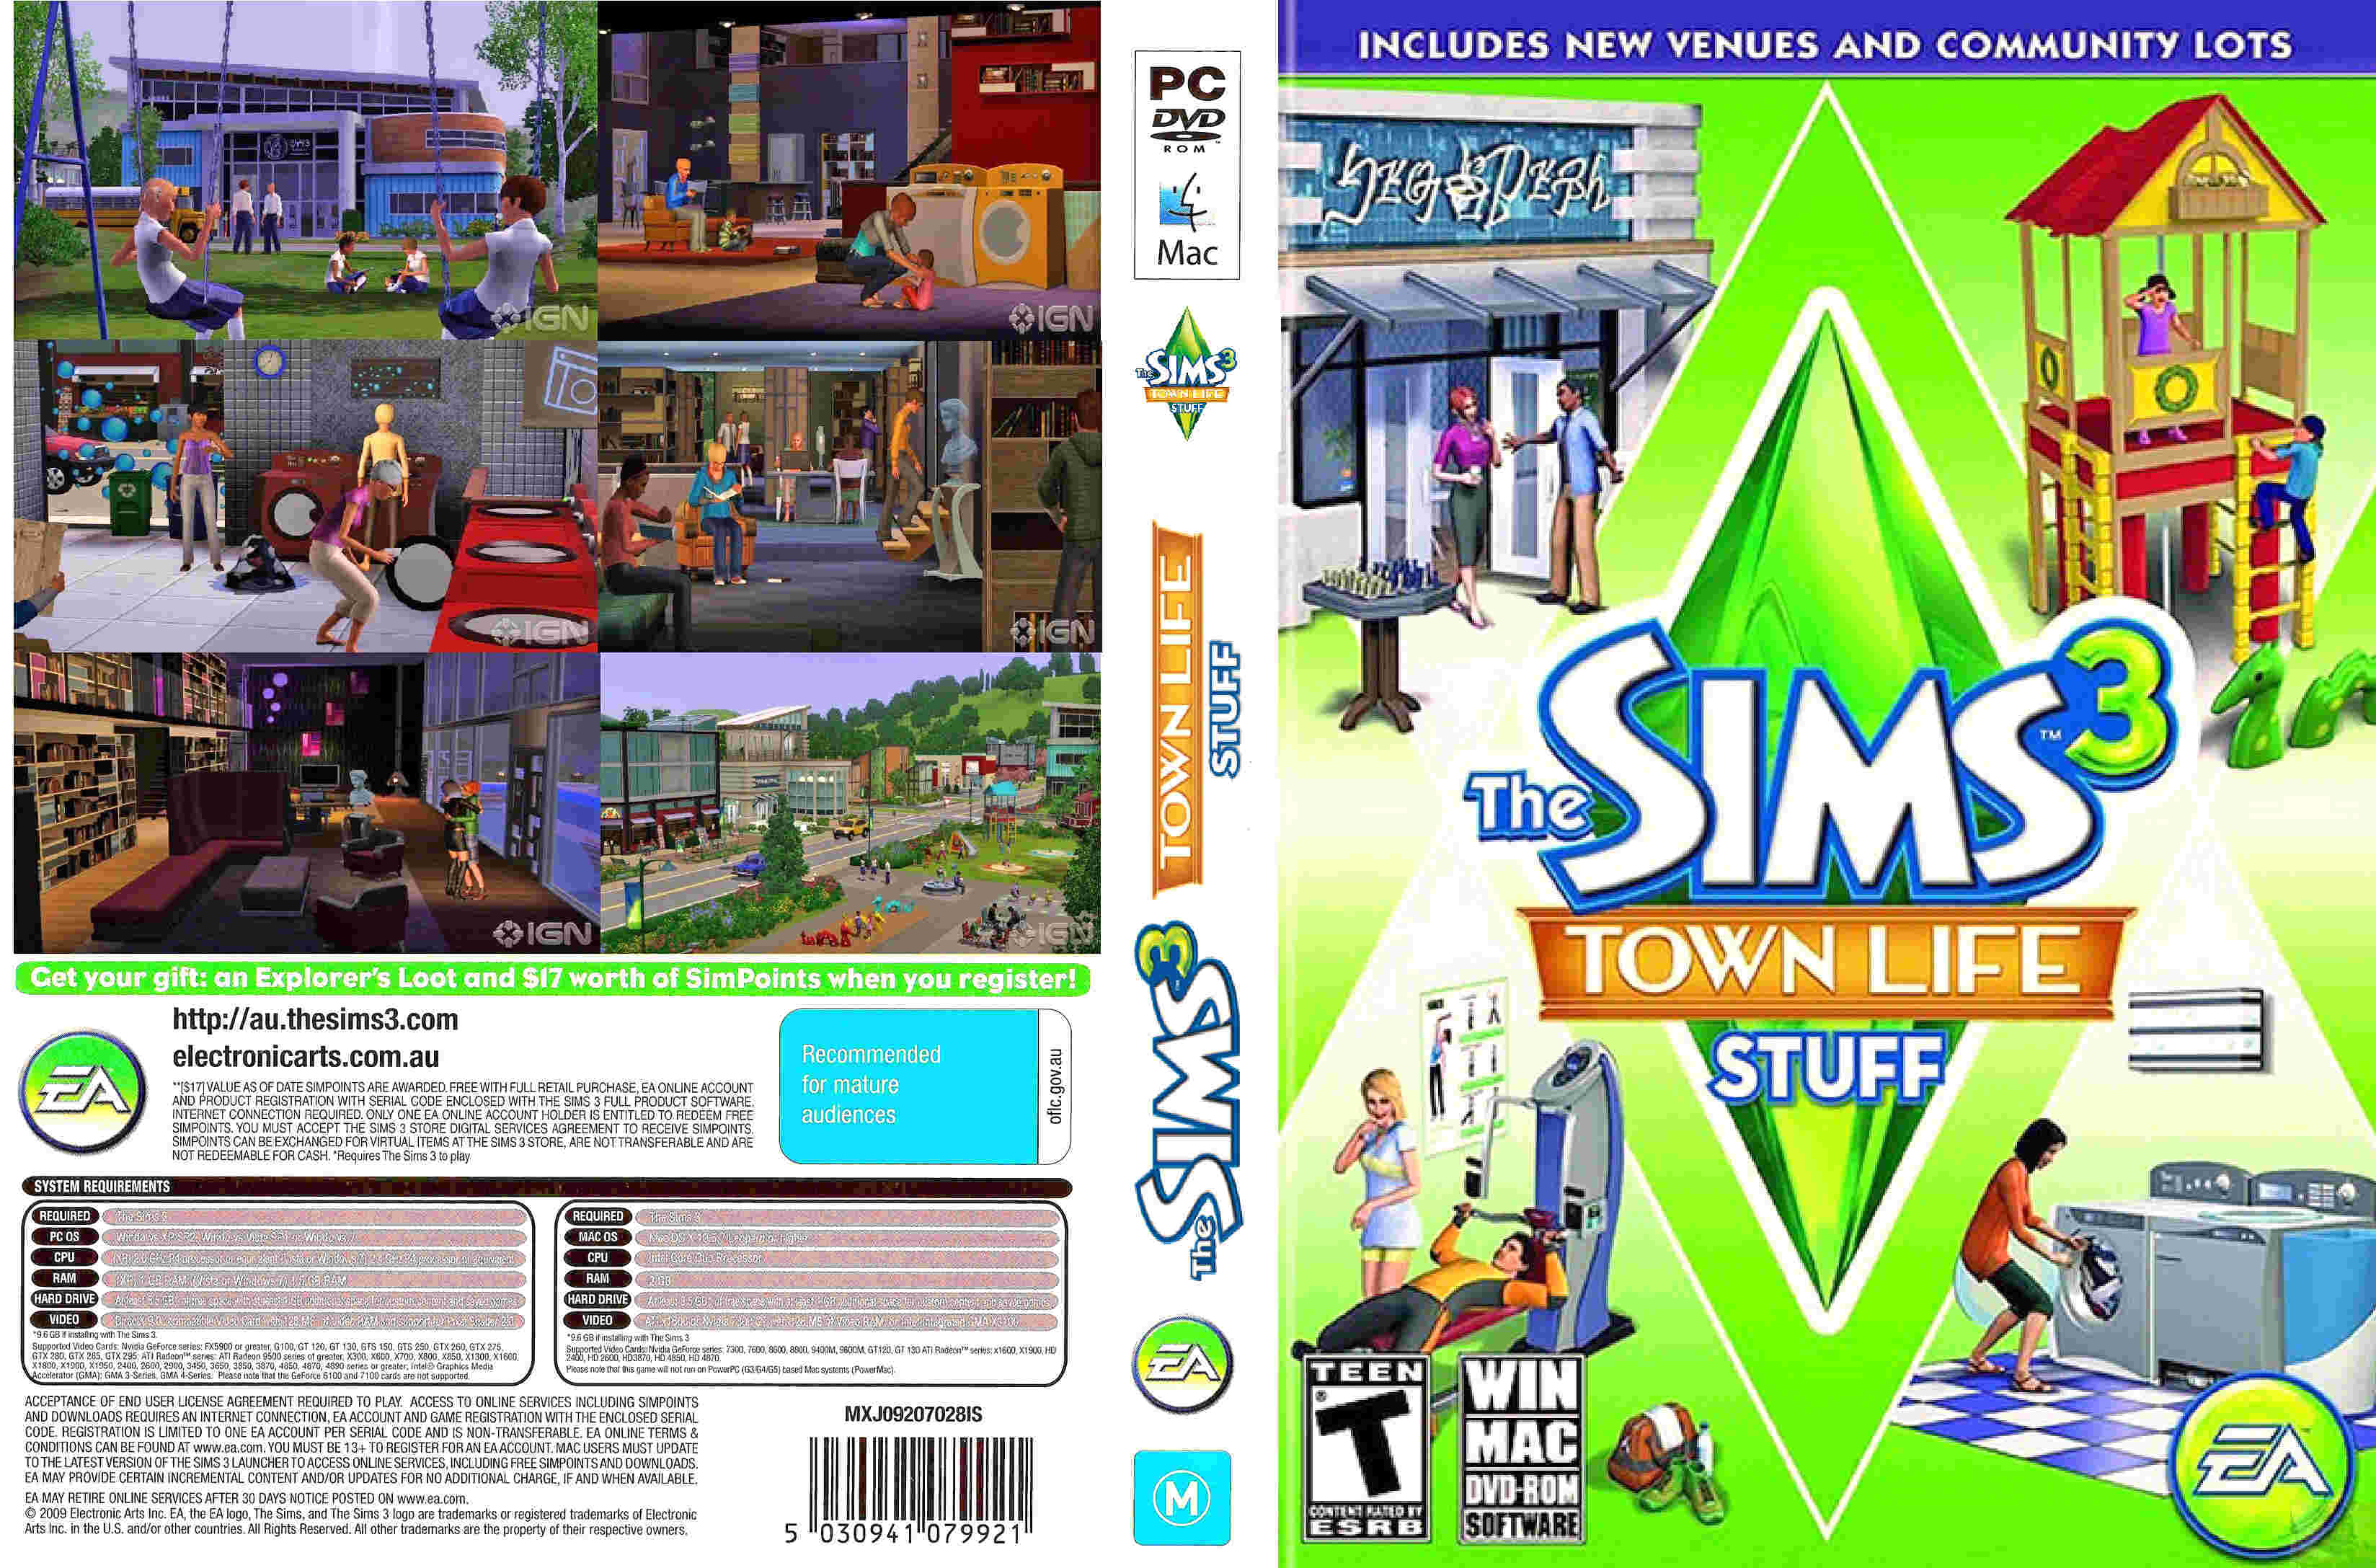 The Sims 3 Town Life Stuff – PC